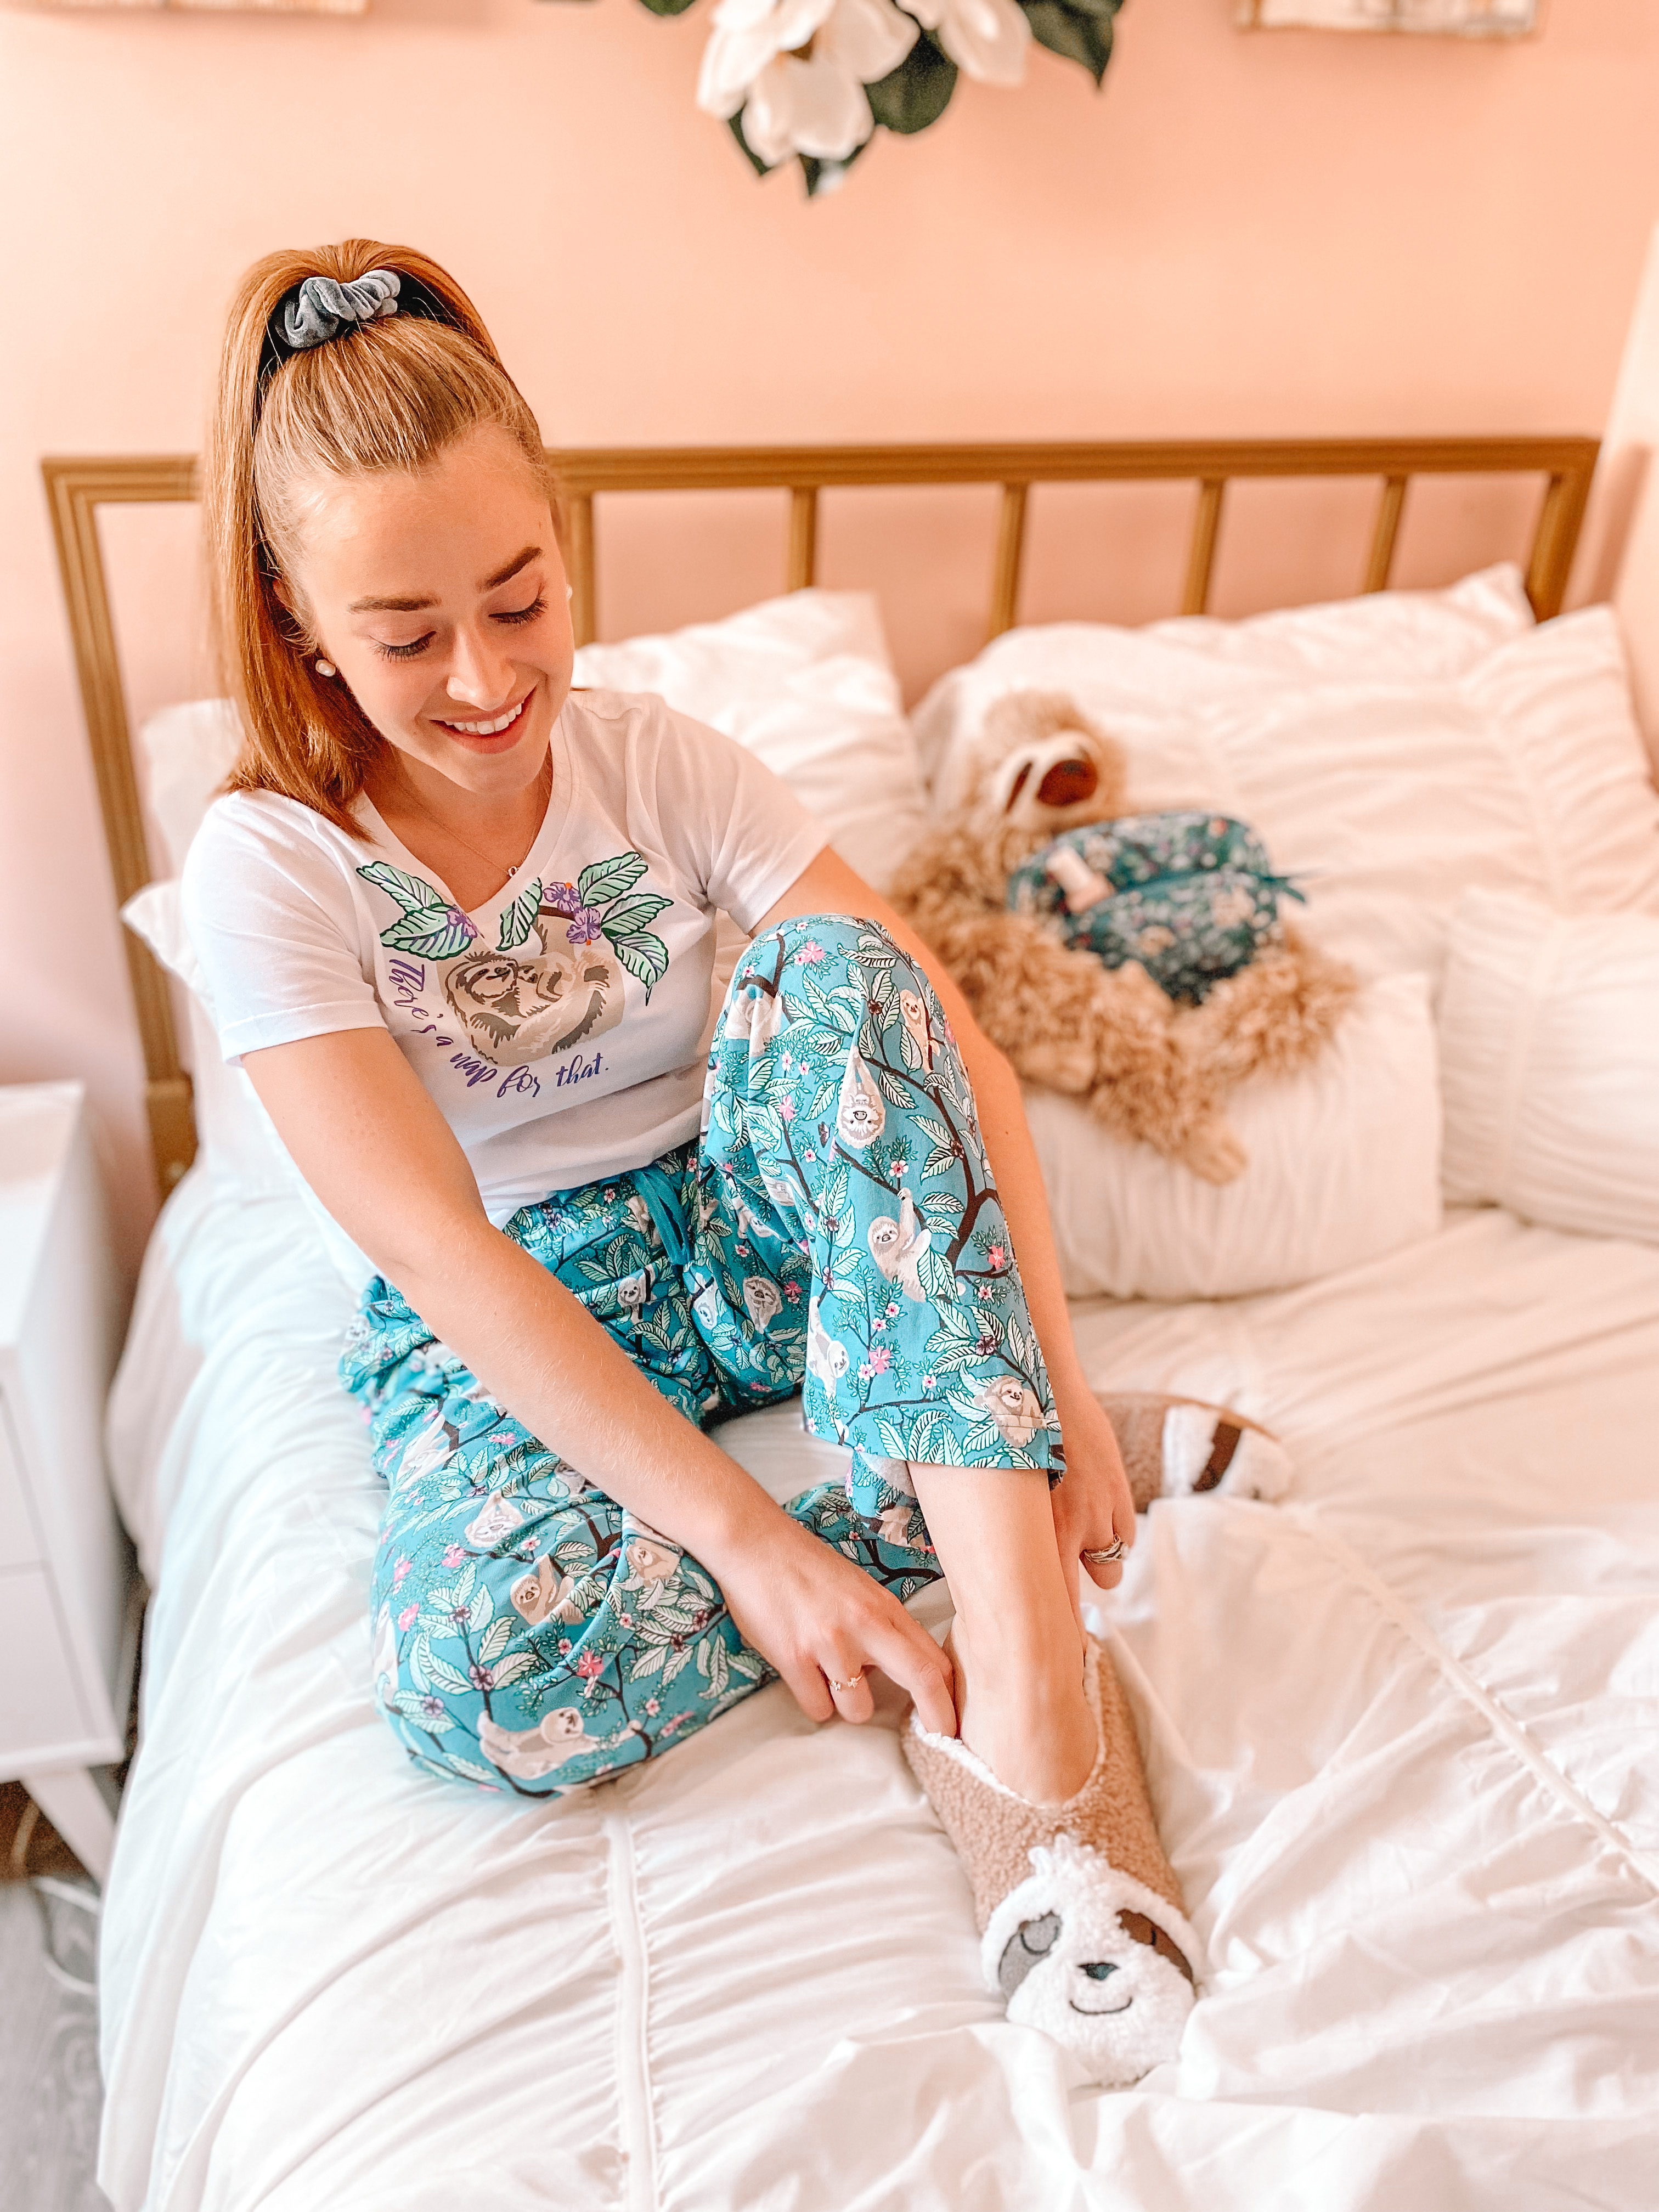 sloth slippers, hanging around pattern and girl in pajamas